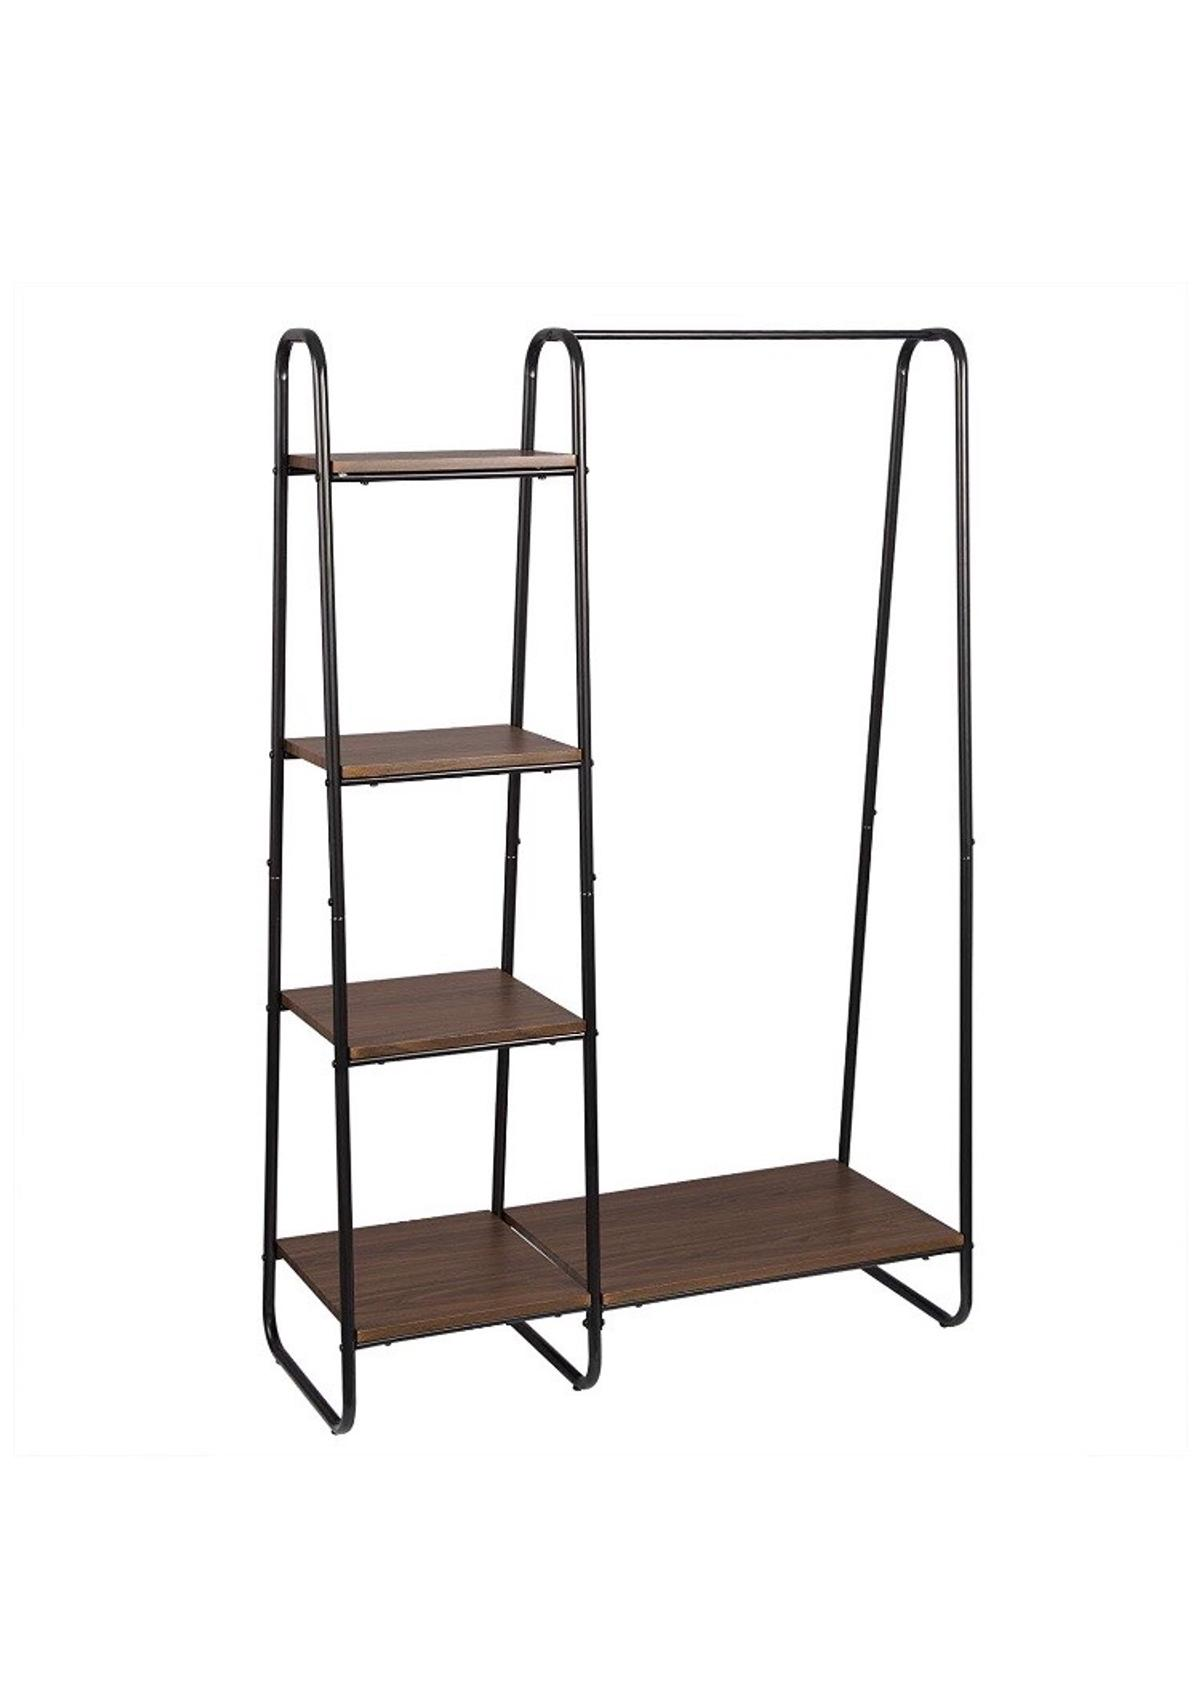 Clothing Rail With Ladder Shelving In Kt19 Ewell For 45 00